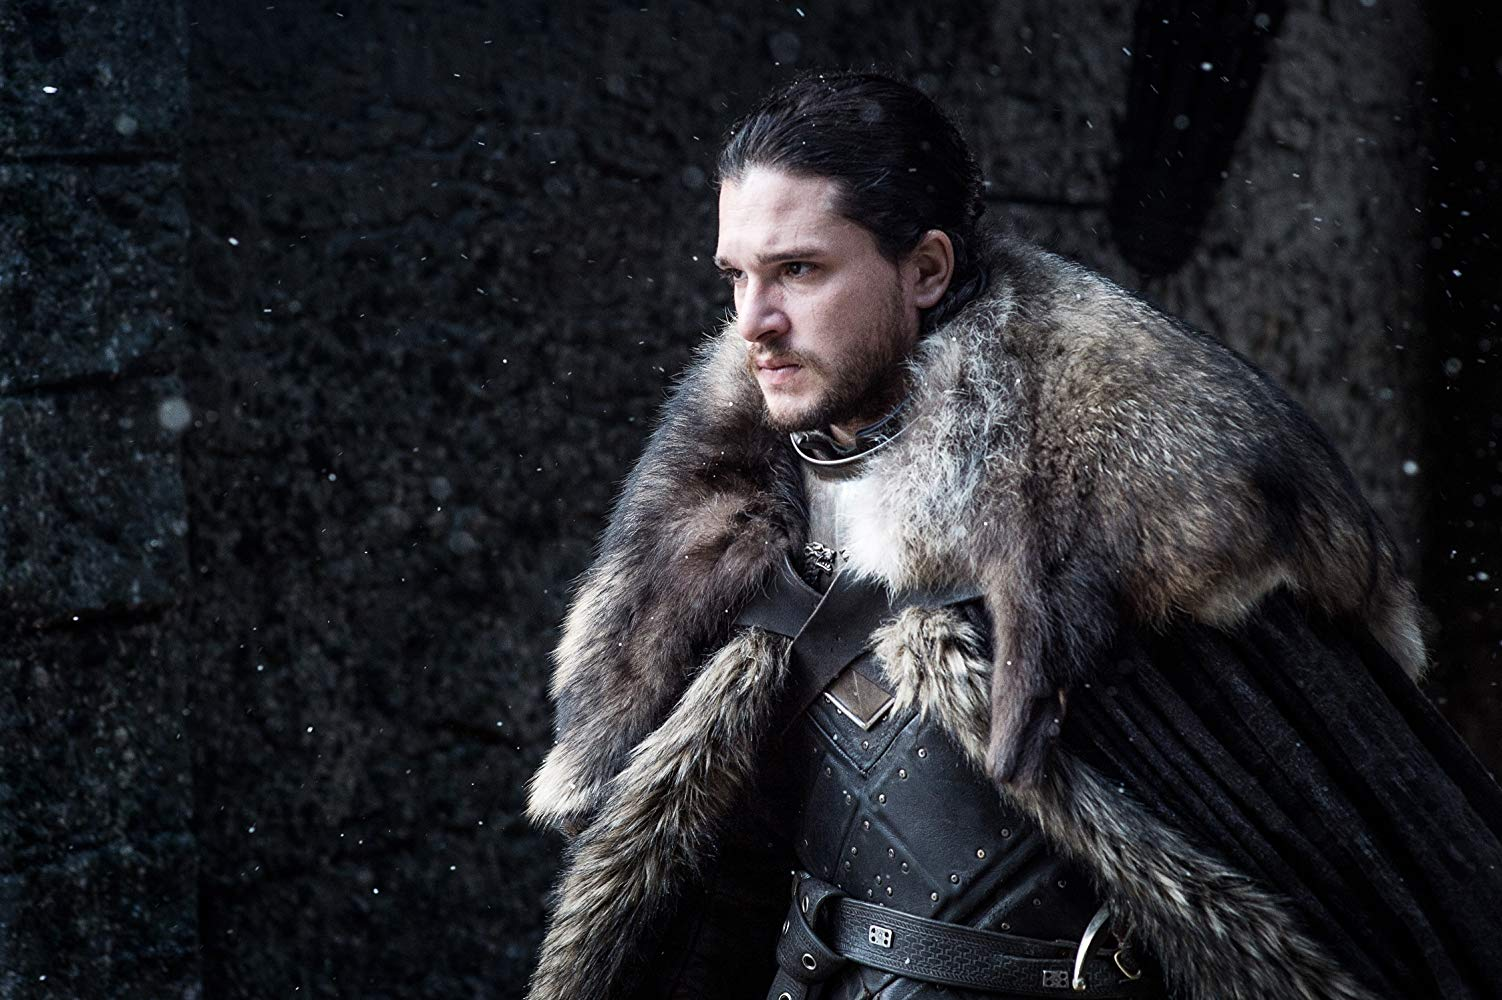 Kit Harington (Jon Snow) in 'Game of Thrones'. (Source: IMDB)